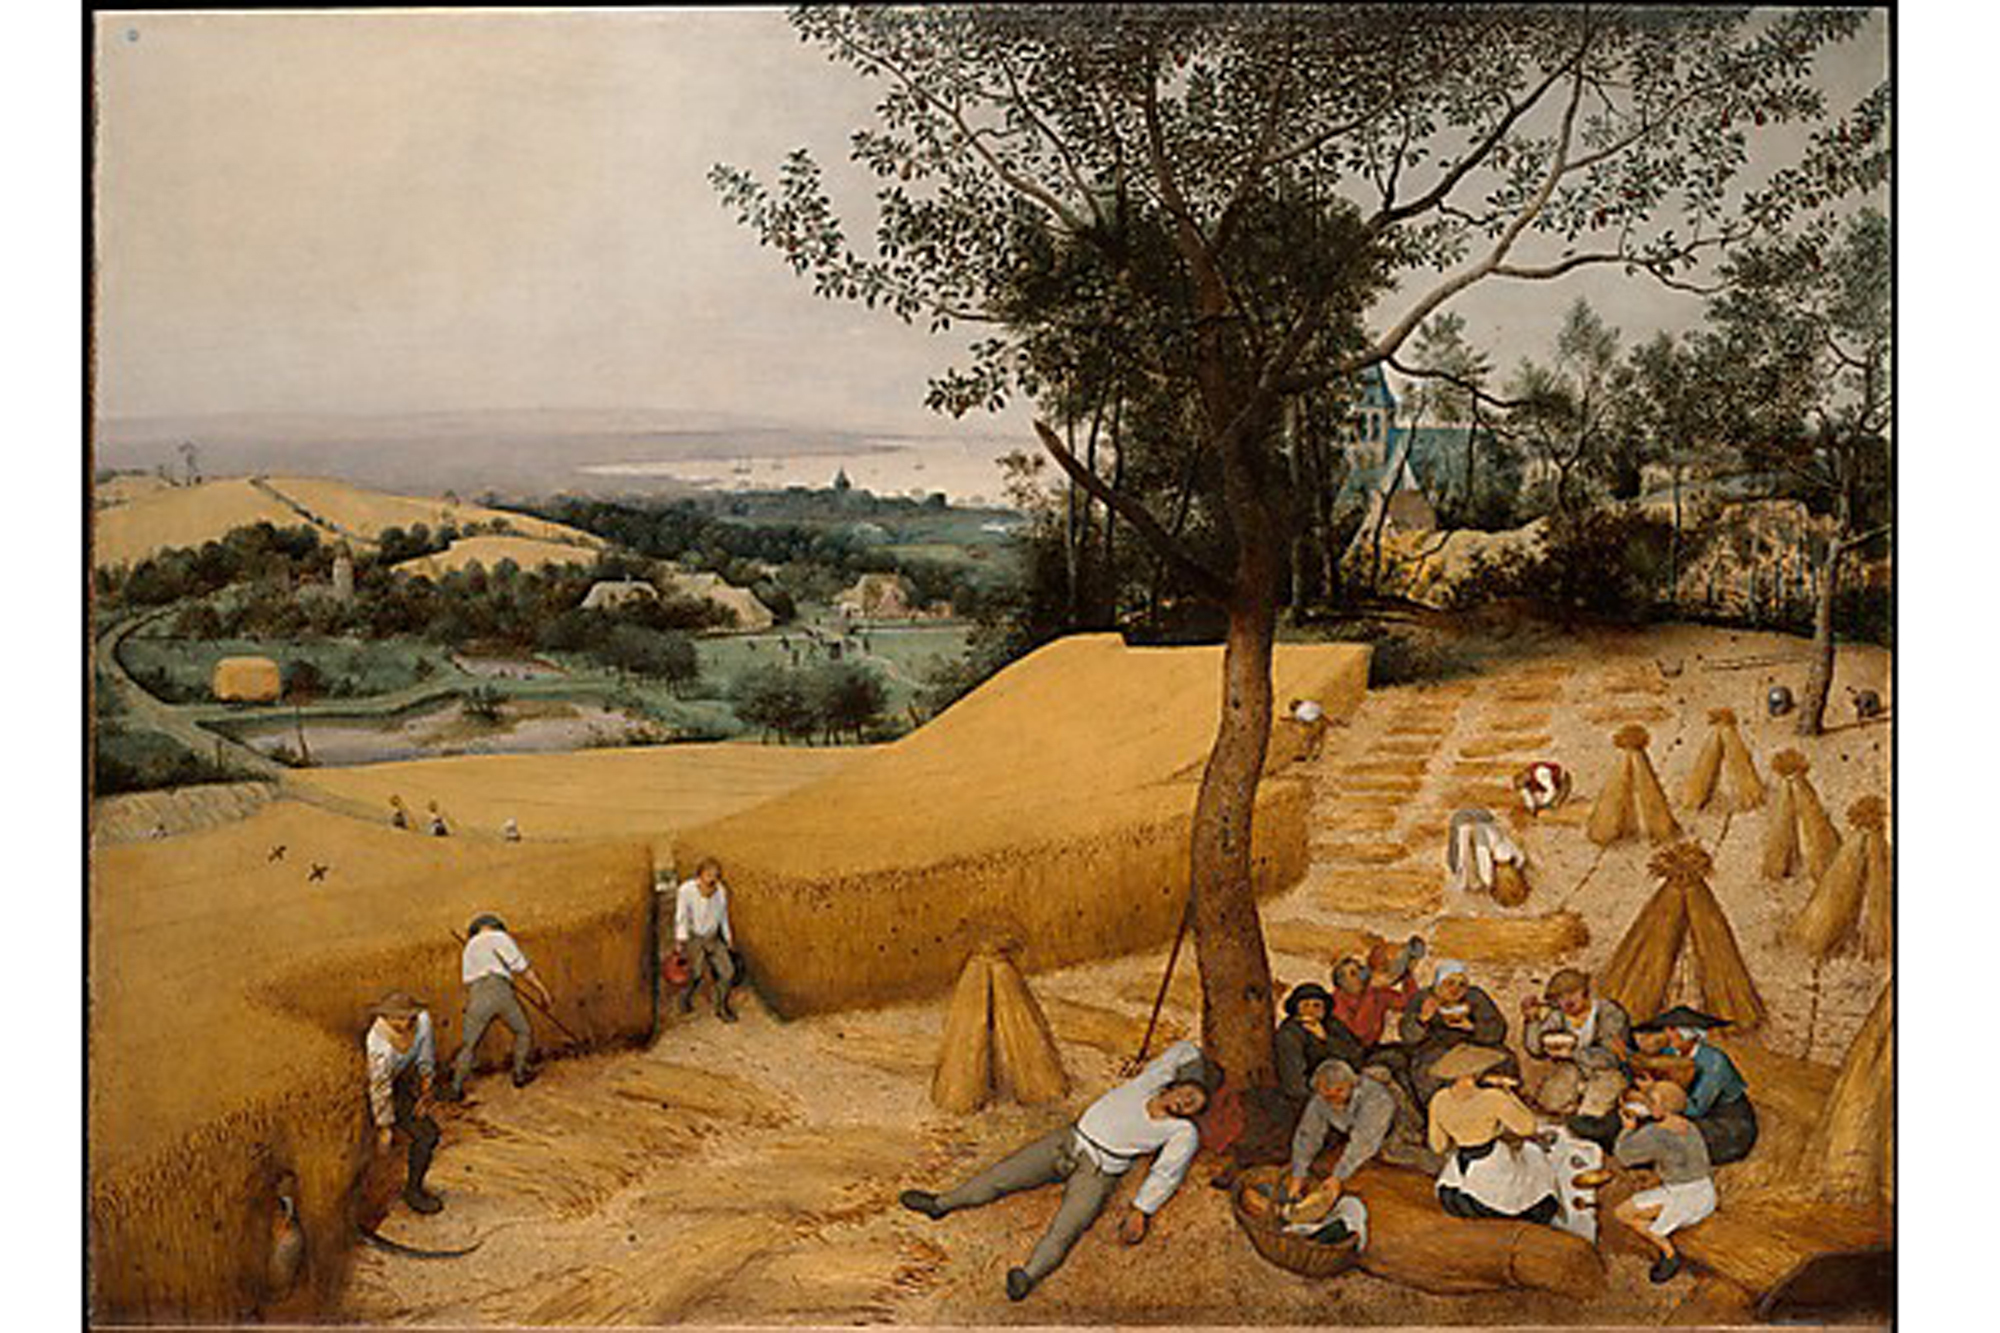 Pieter Bruegel the Elder, The Harvesters (1565)